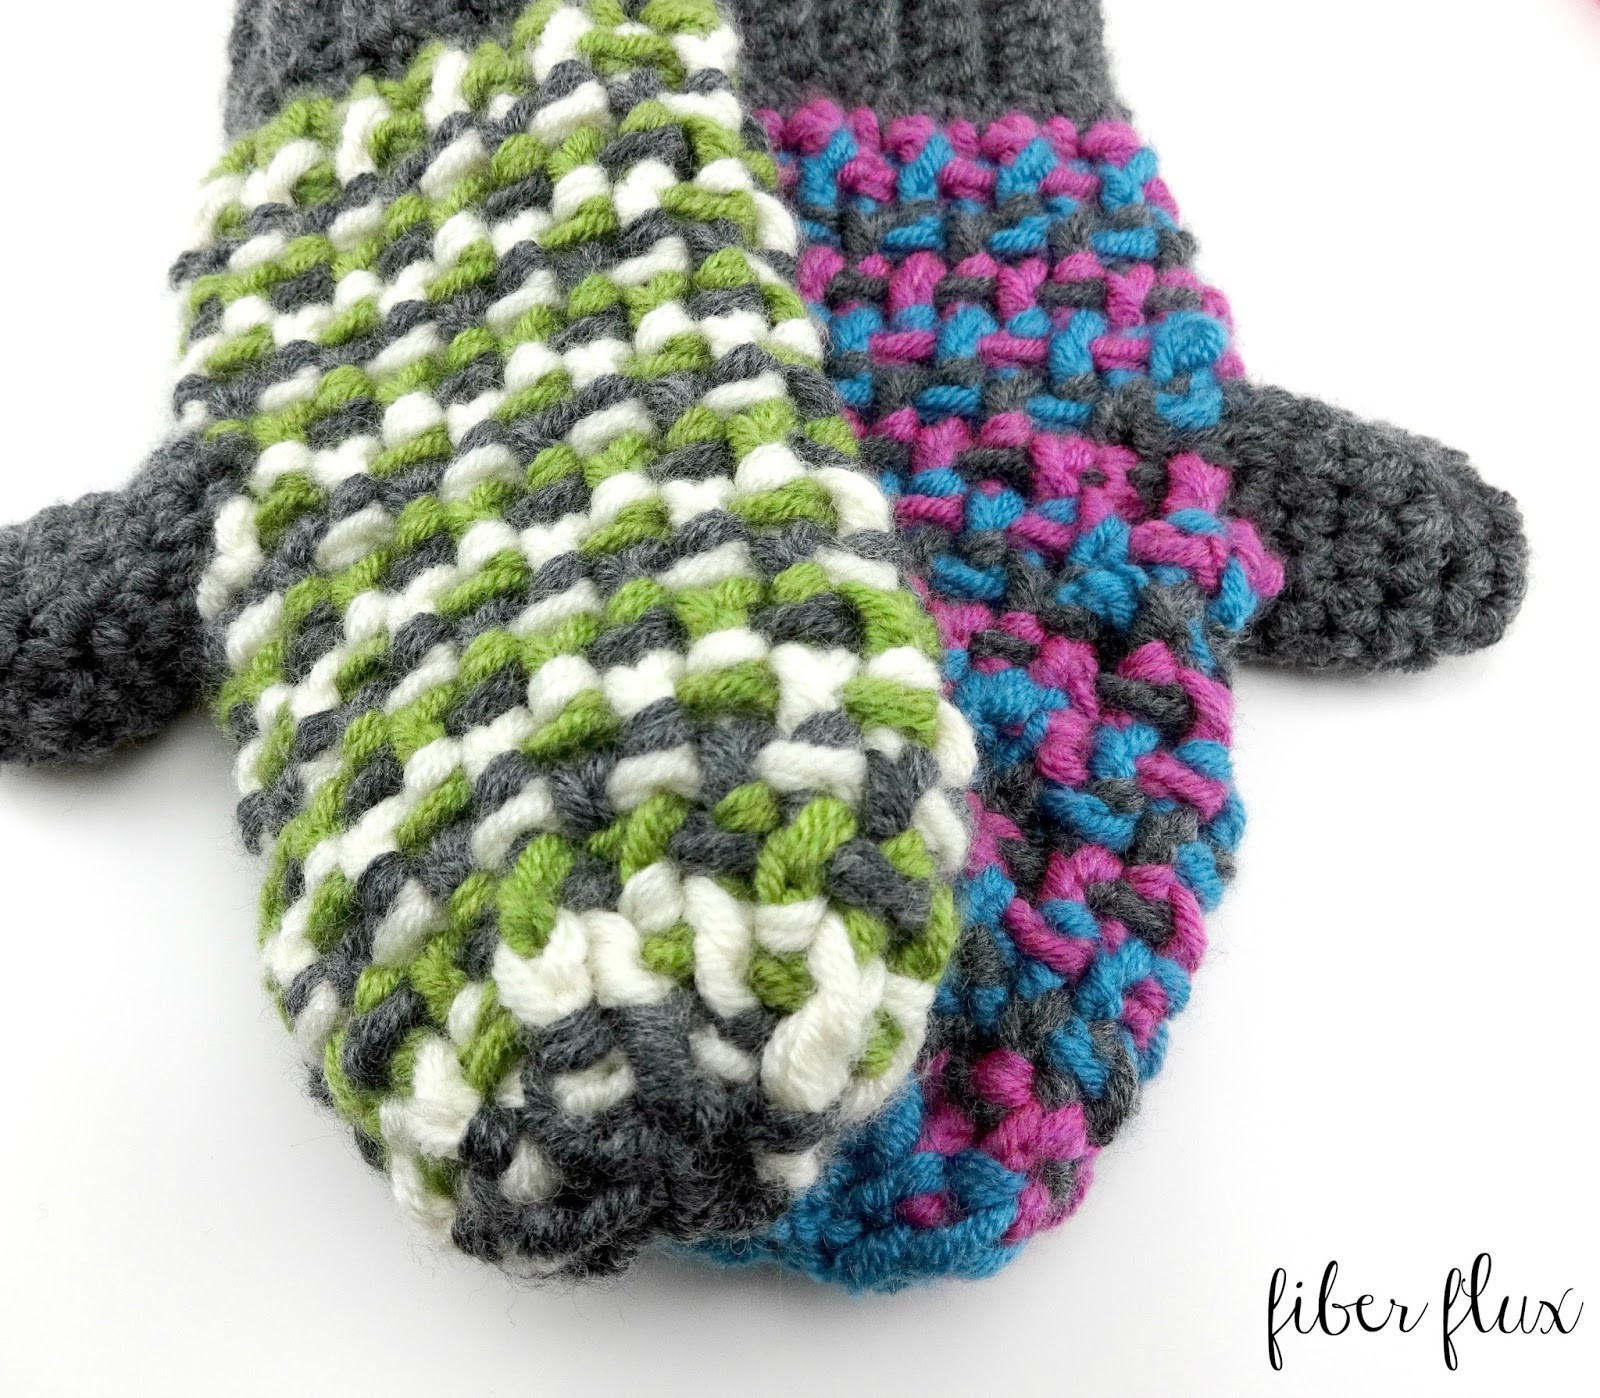 Crochet Mittens Awesome Fiber Flux Free Crochet Pattern Sleigh Ride Mittens Of Brilliant 48 Pictures Crochet Mittens